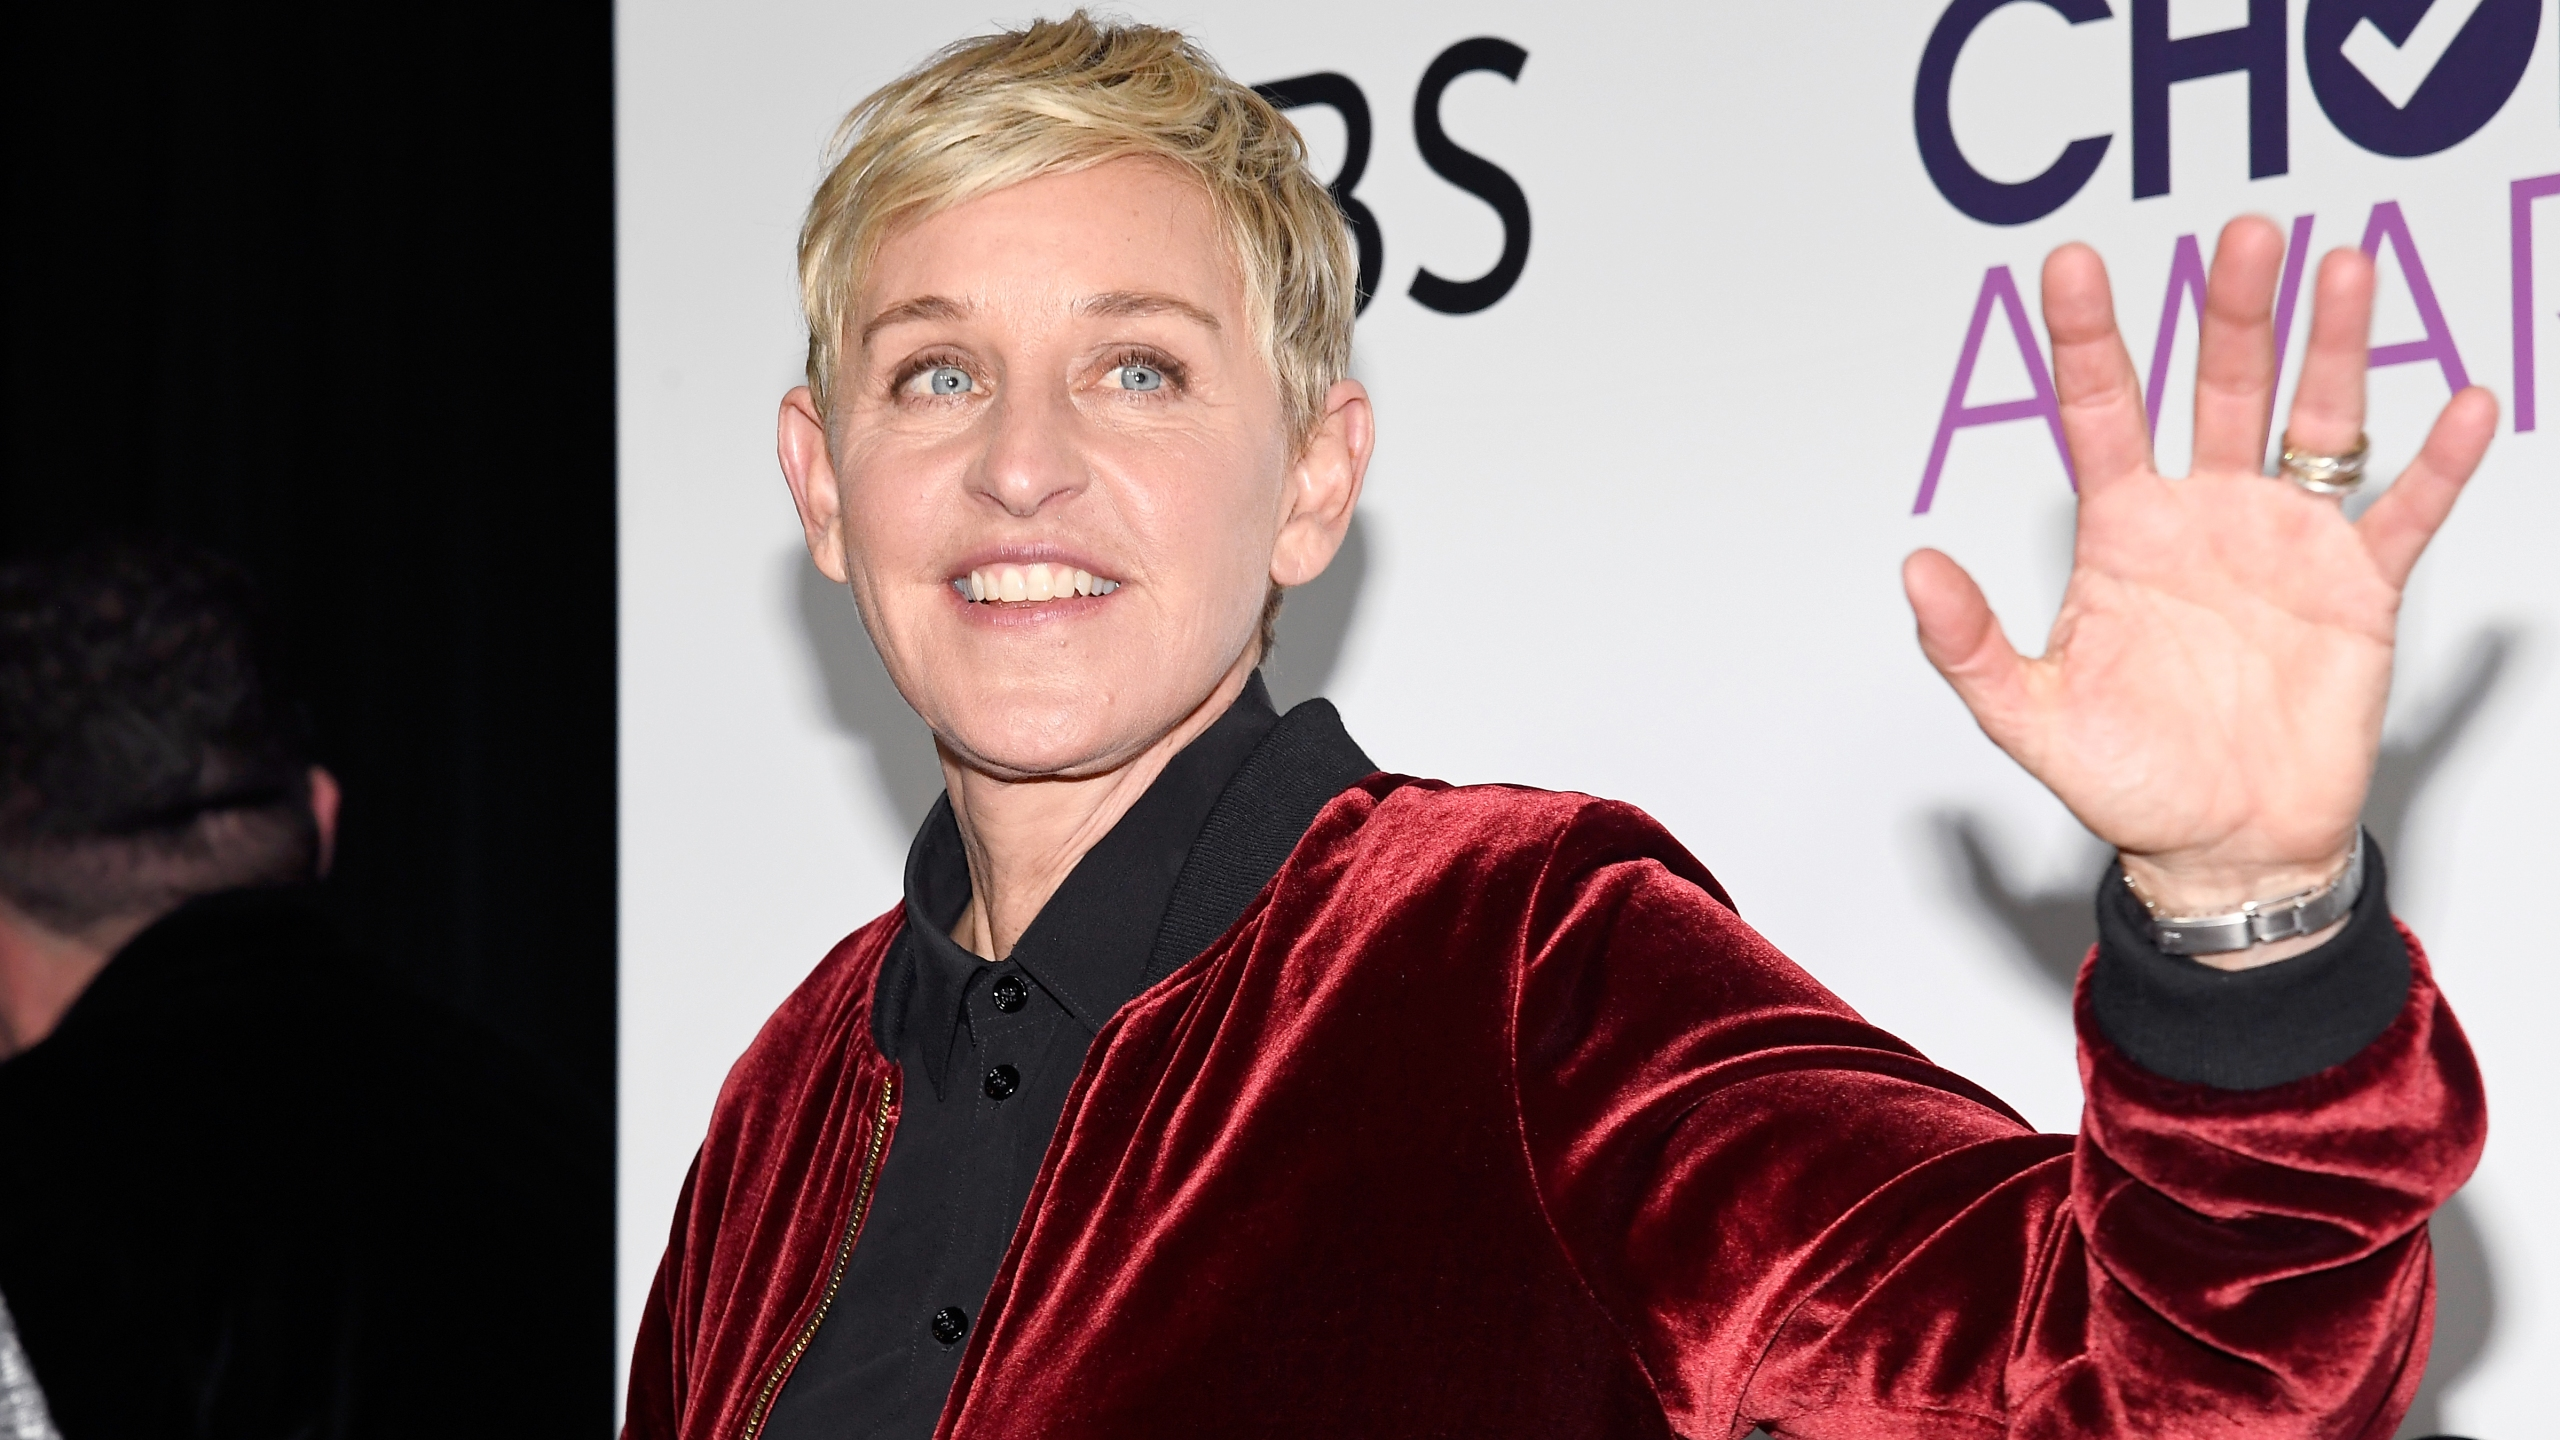 Ellen Degeneres poses in the press room during the People's Choice Awards on January 18, 2017, in Los Angeles. (Kevork Djansezian/Getty Images)